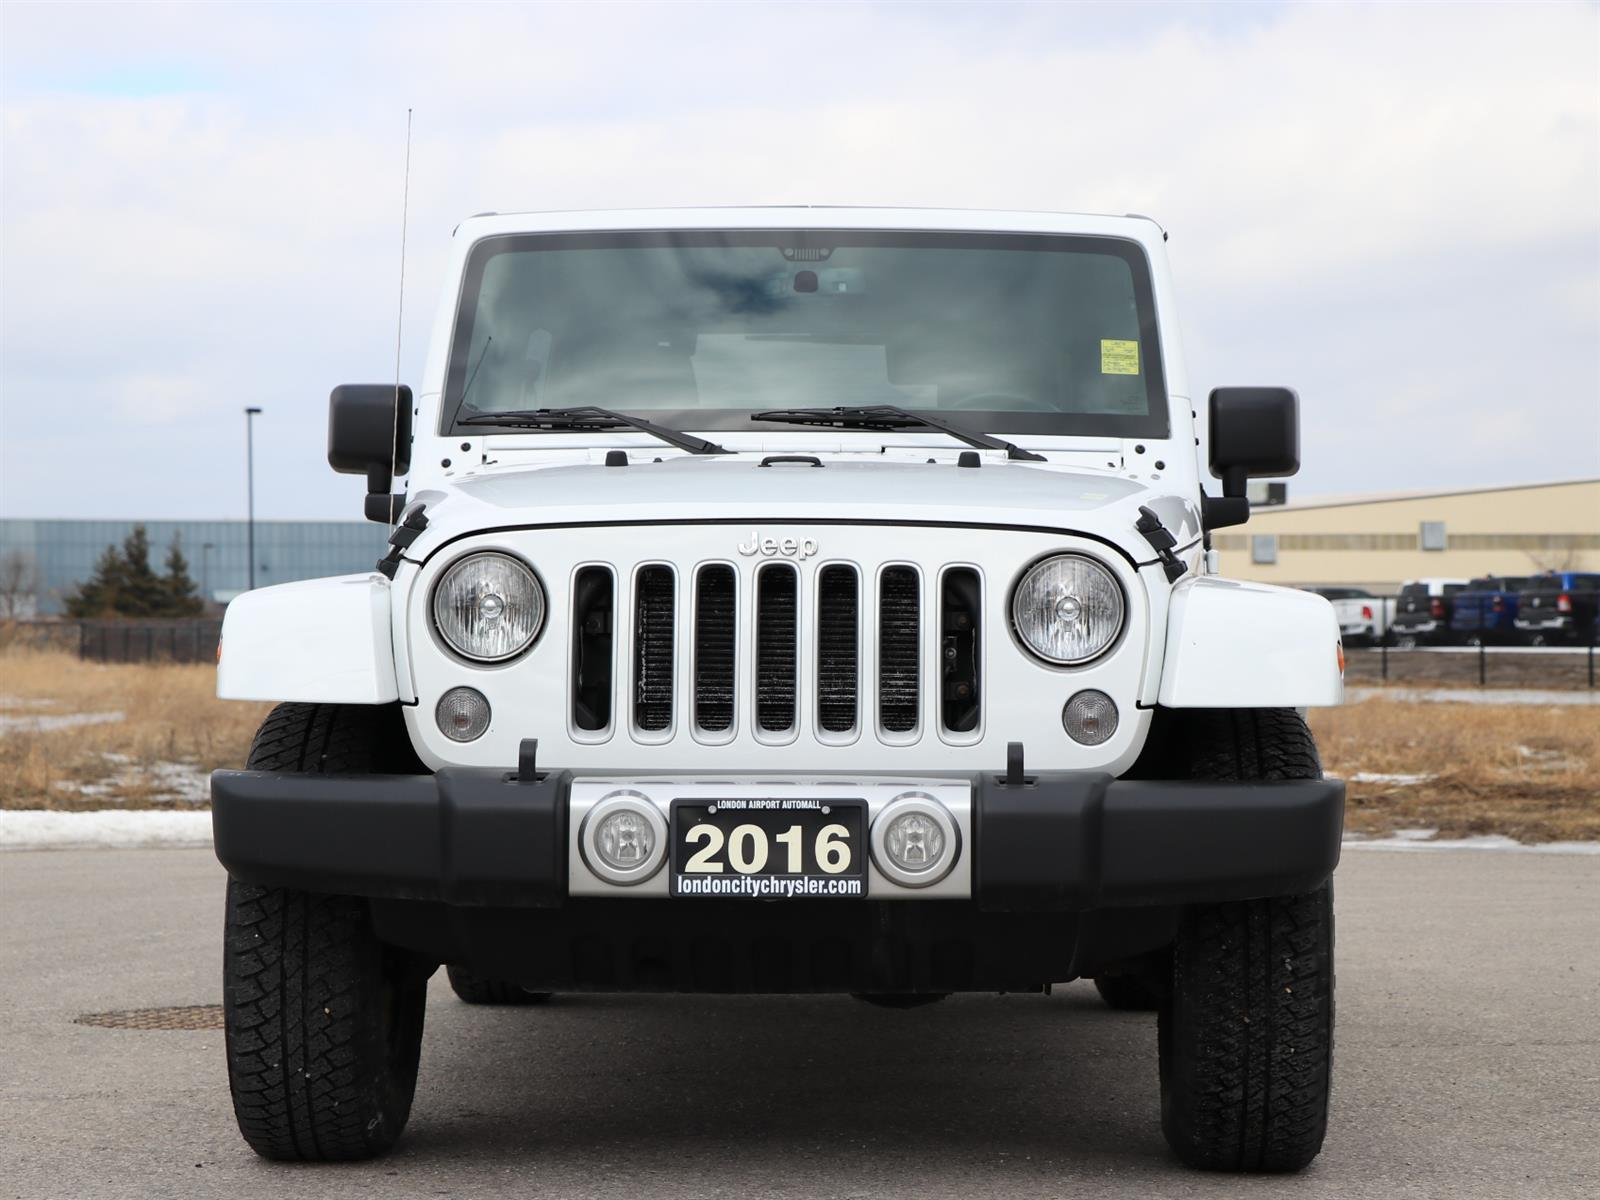 Used 2016 Jeep Wrangler in London,ON